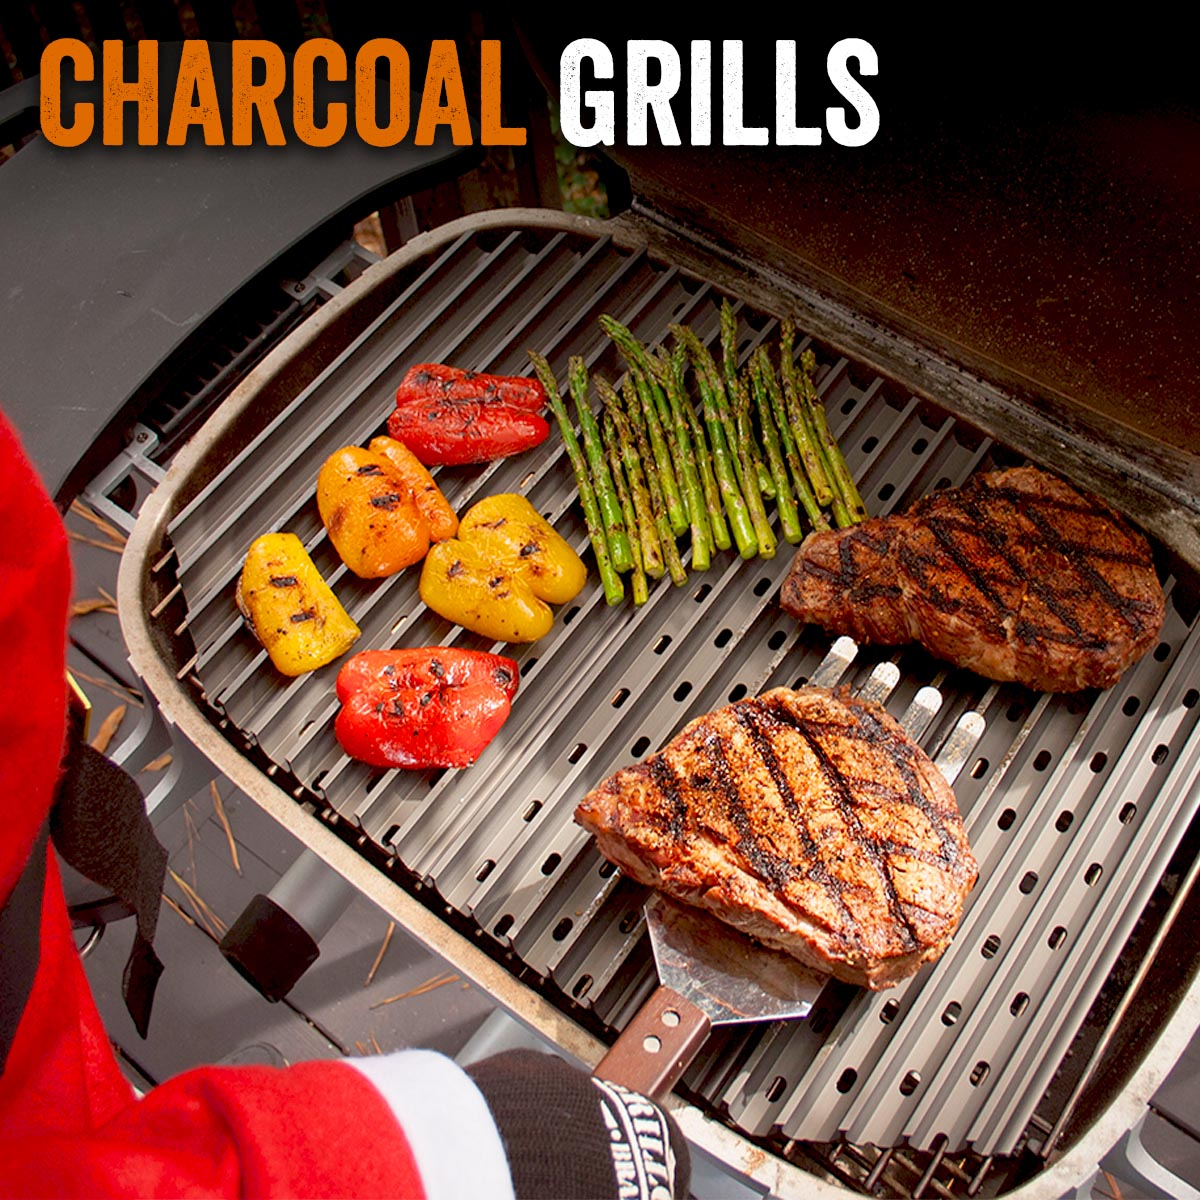 GrillGrates for Charcoal Grills